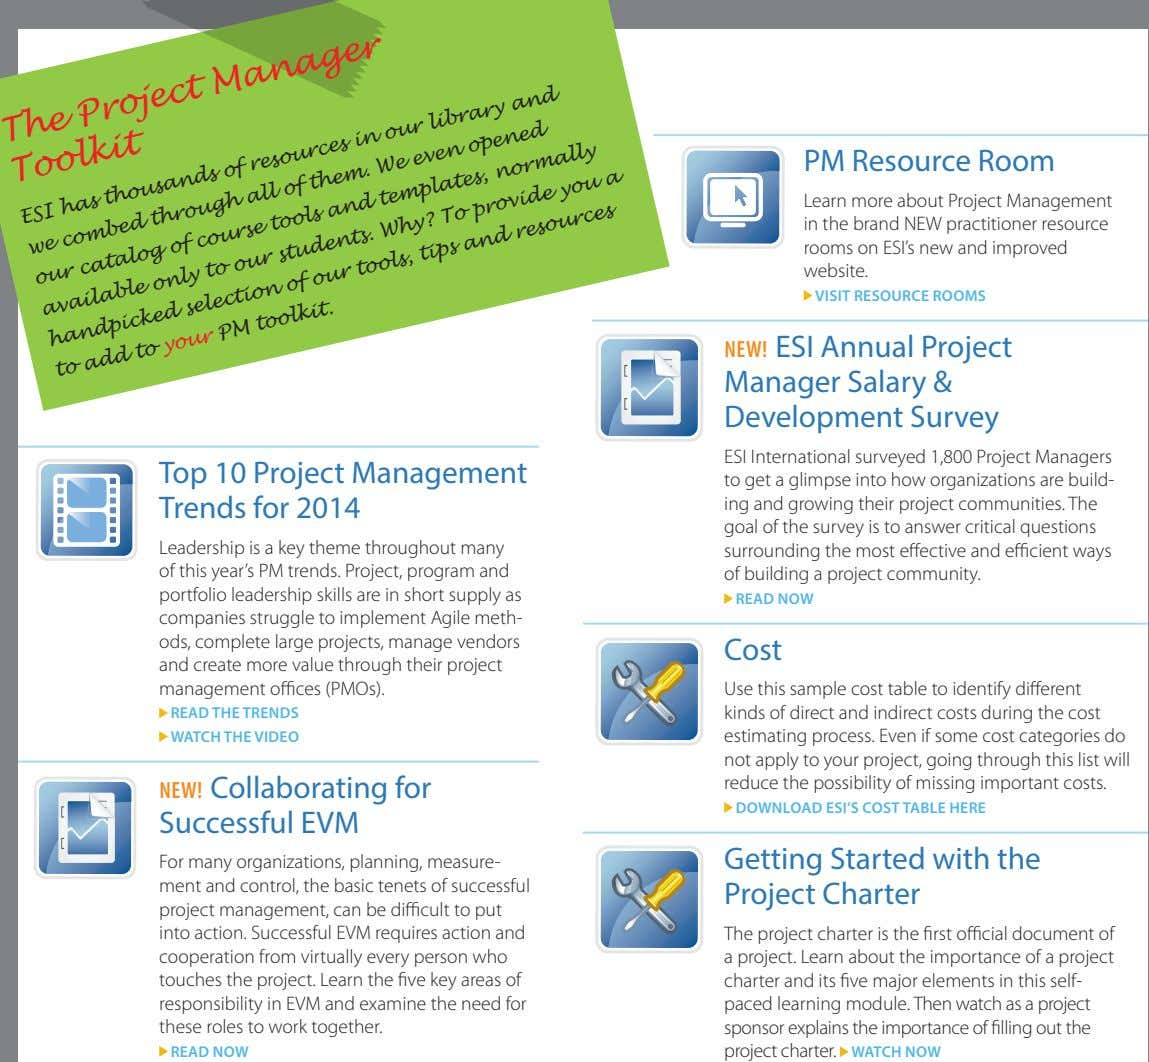 The Project Manager PM Resource Room Toolkit ESI has thousands resources in our library and